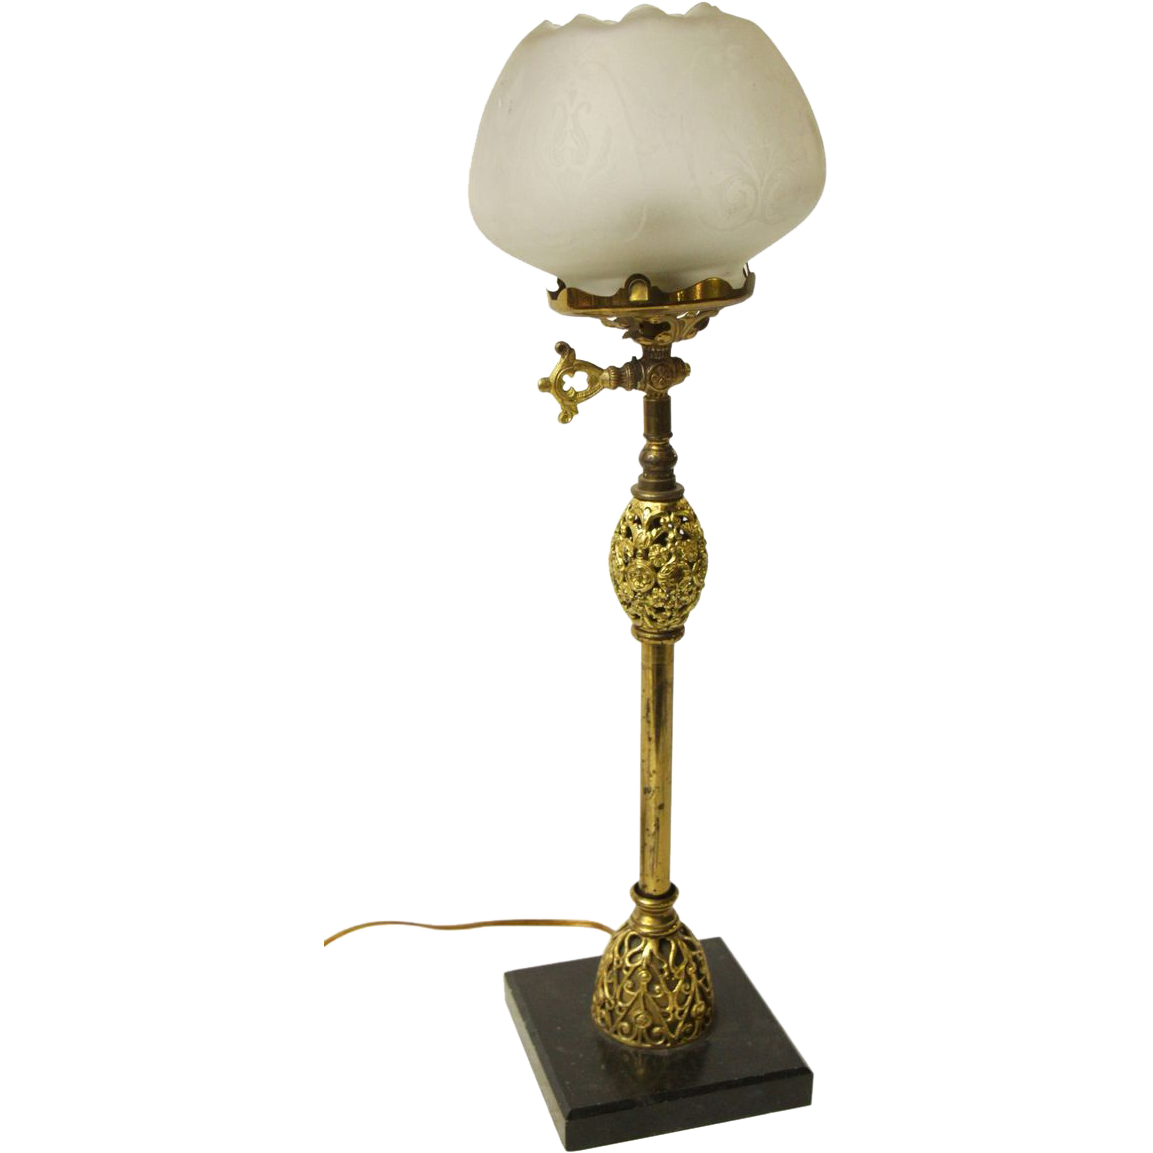 Pretty Ornate Table Lamp With Glass Shade From